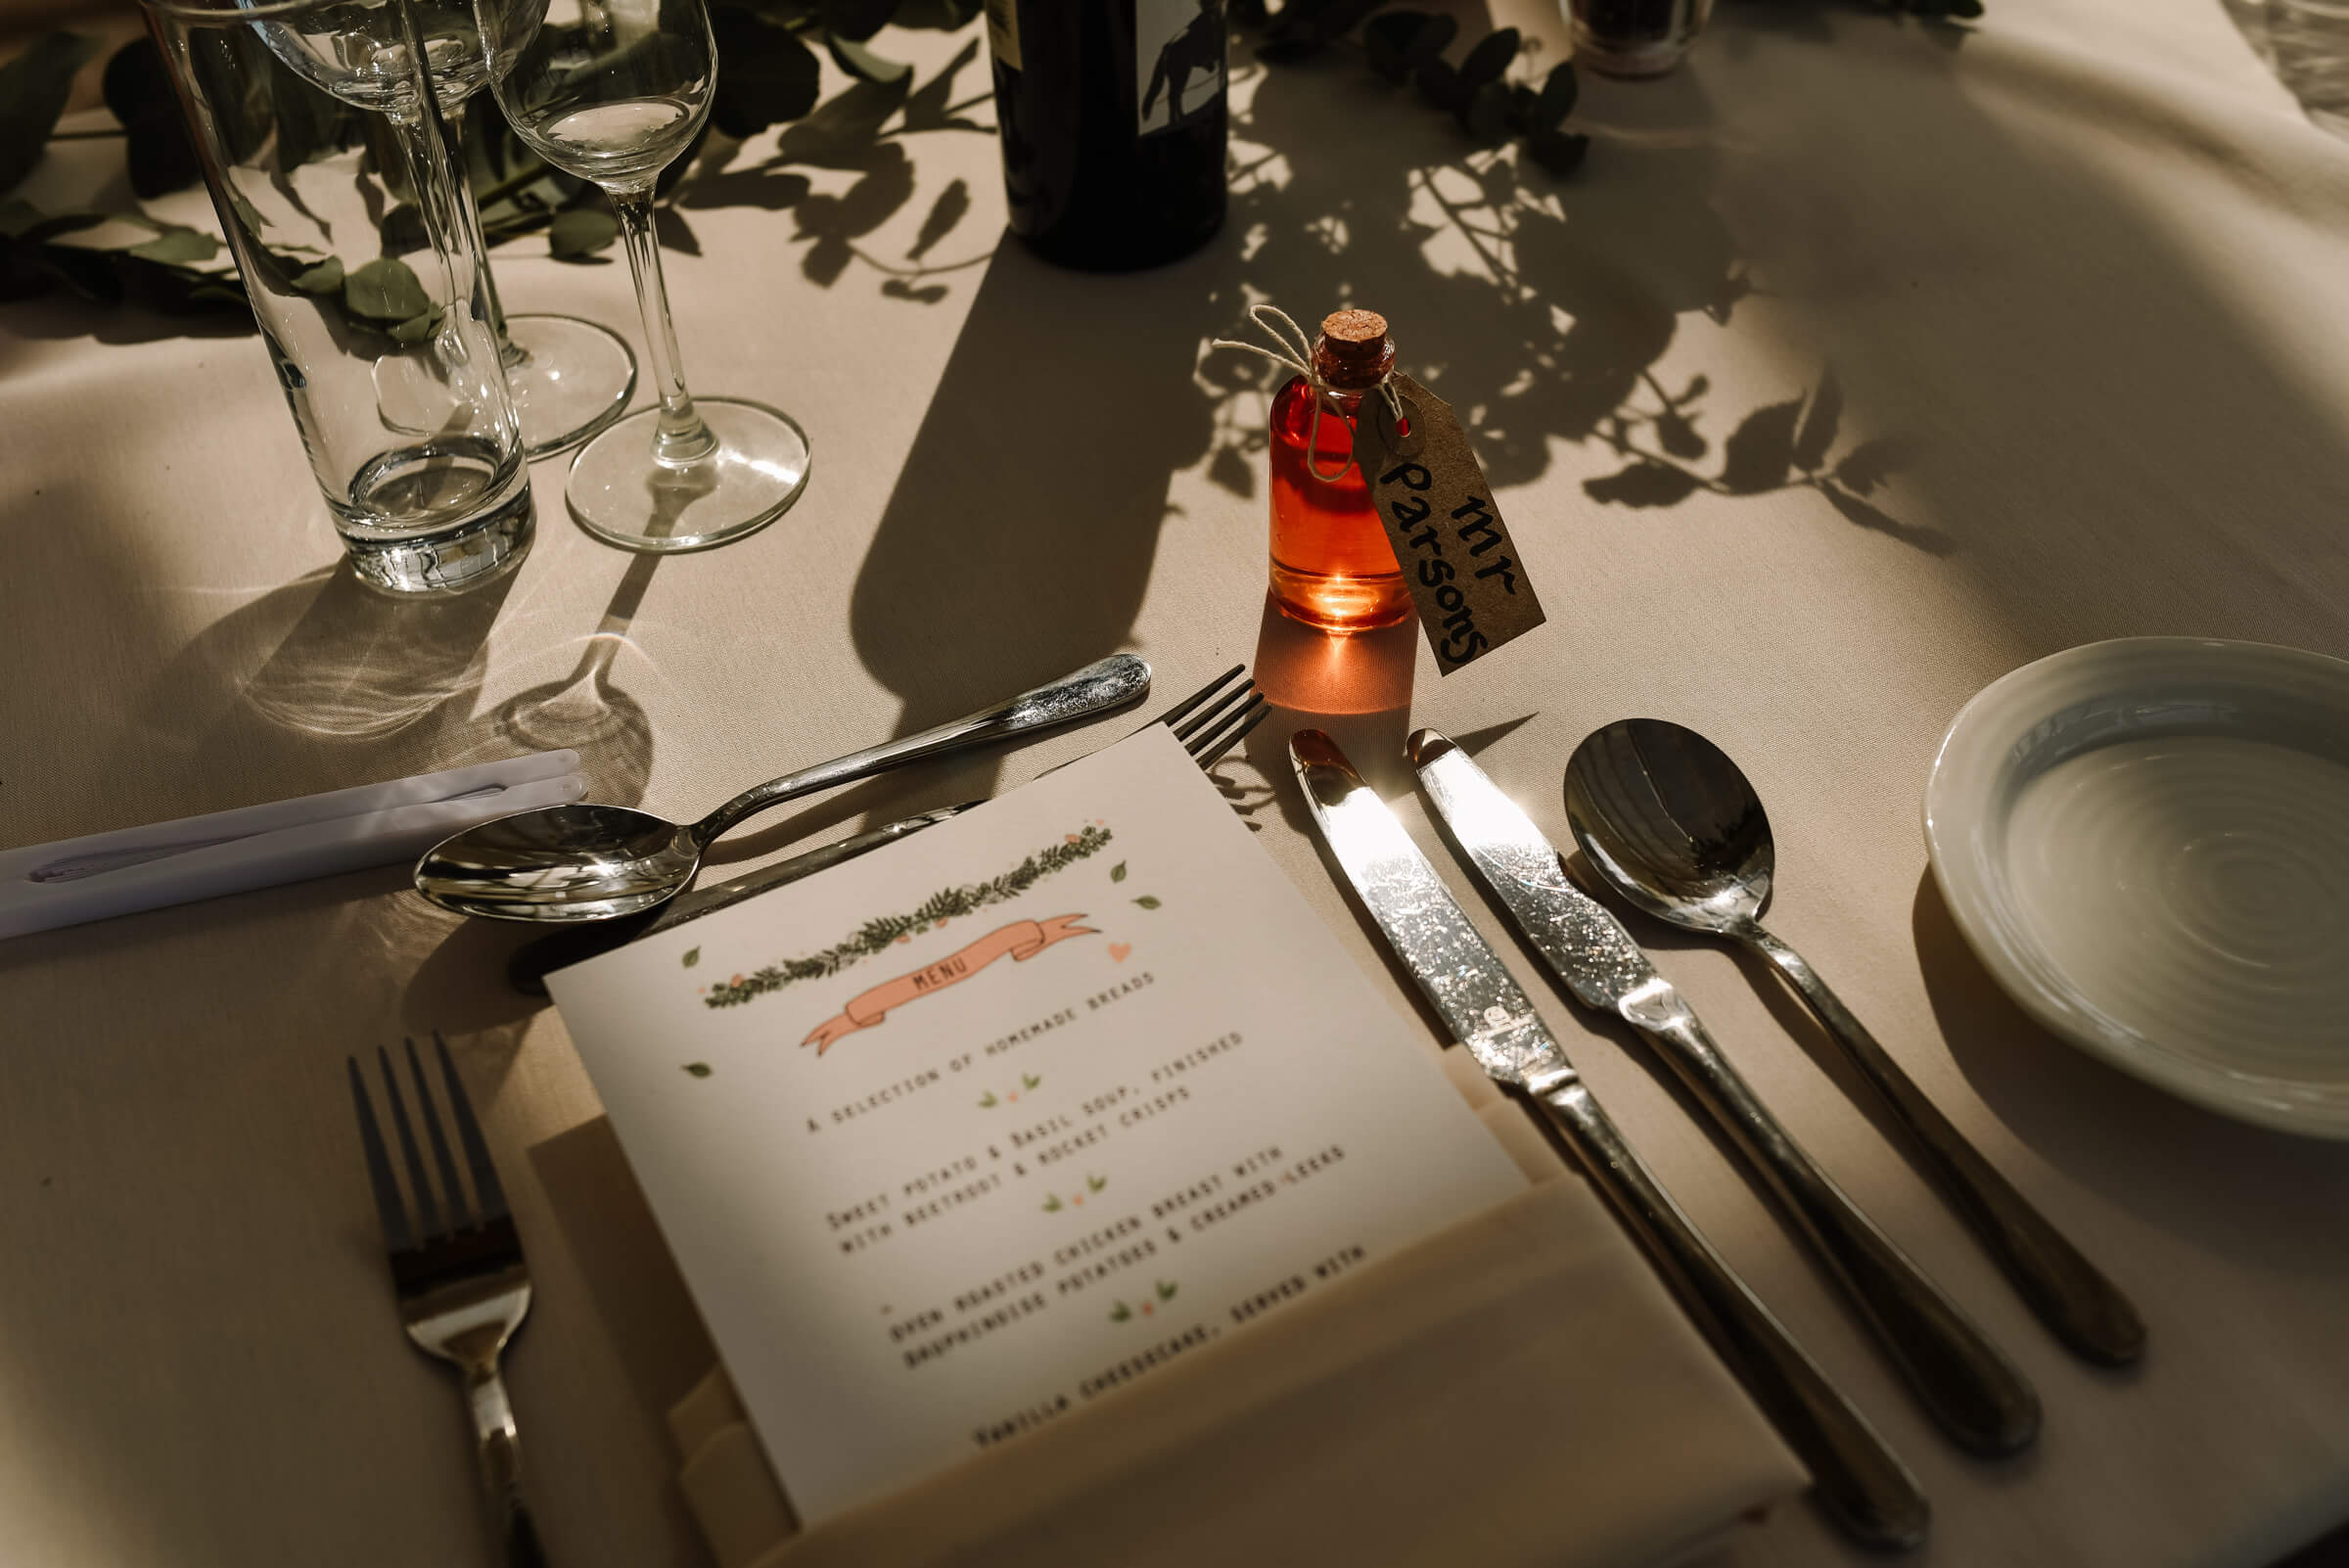 menu and alcoholic wedding favour on tables